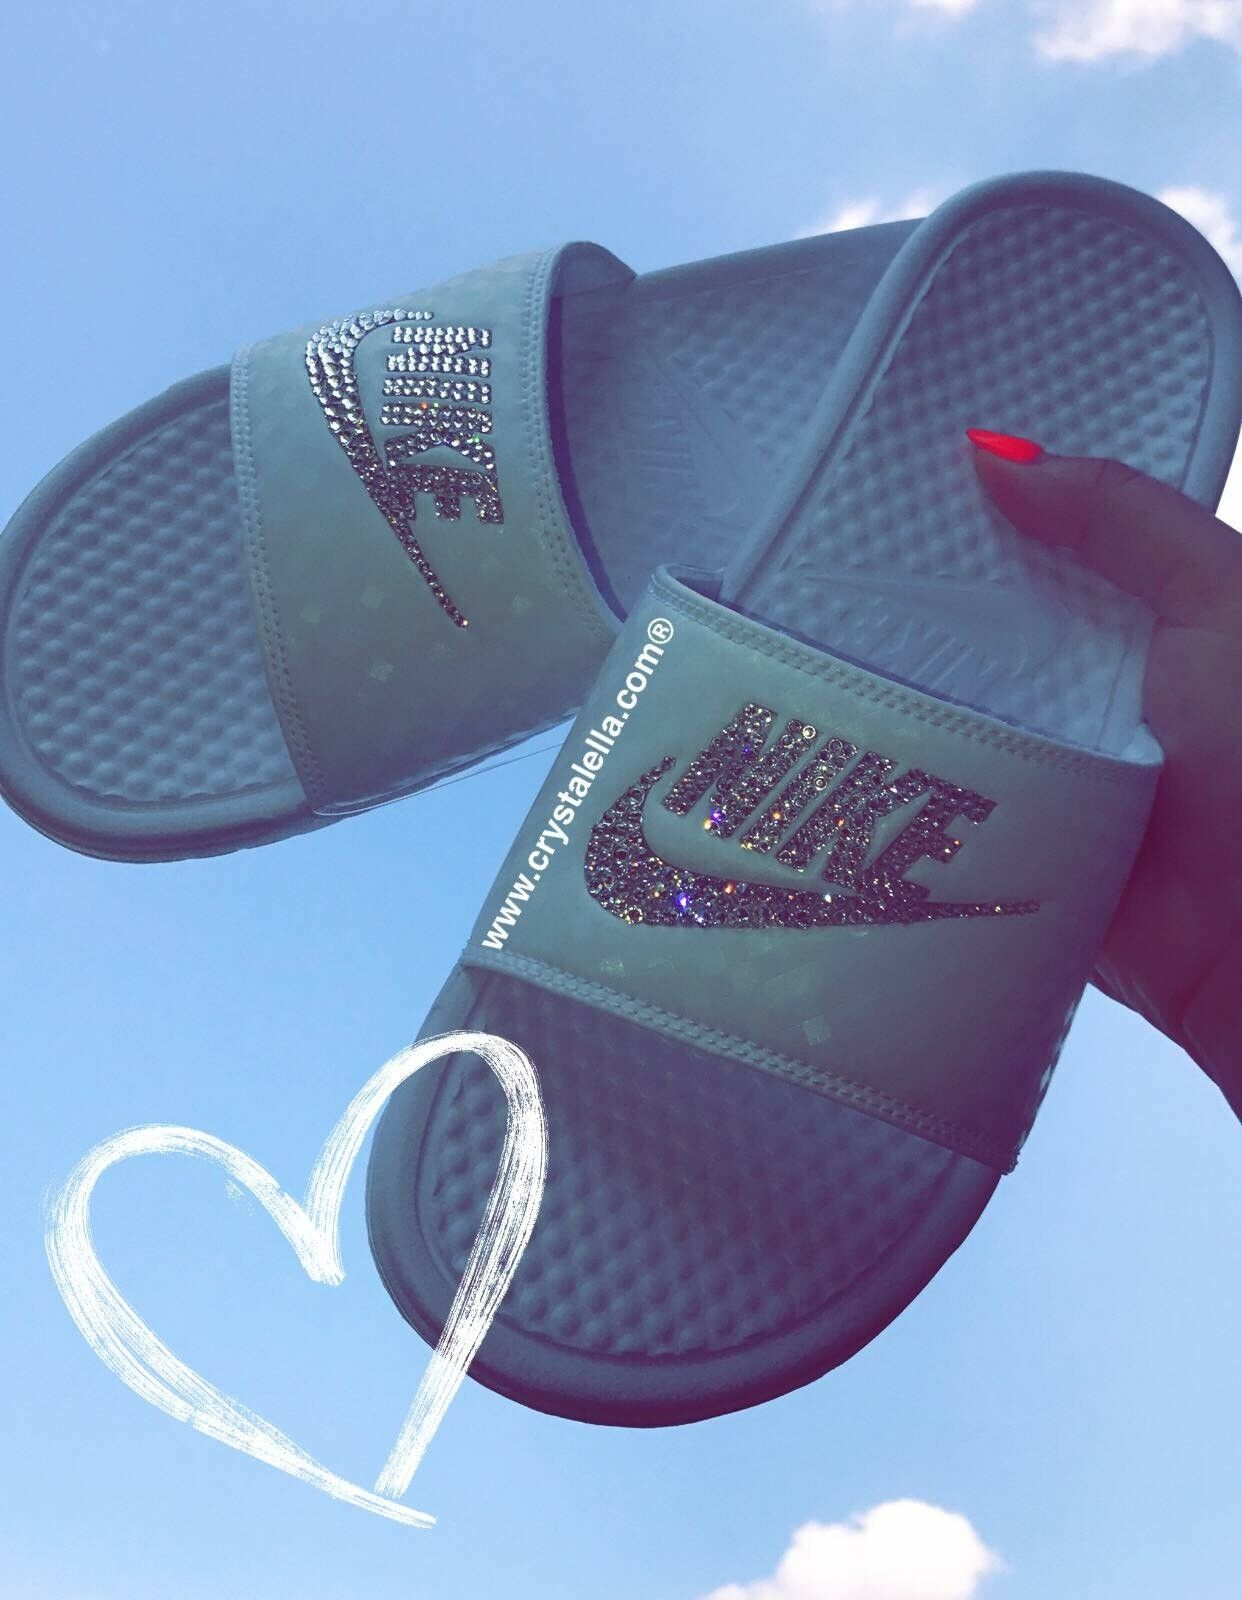 Crystal Nike Benassi Sandales Womans Slides 100% Brand New in Box 100% Slides Authentic Nike cd7d54